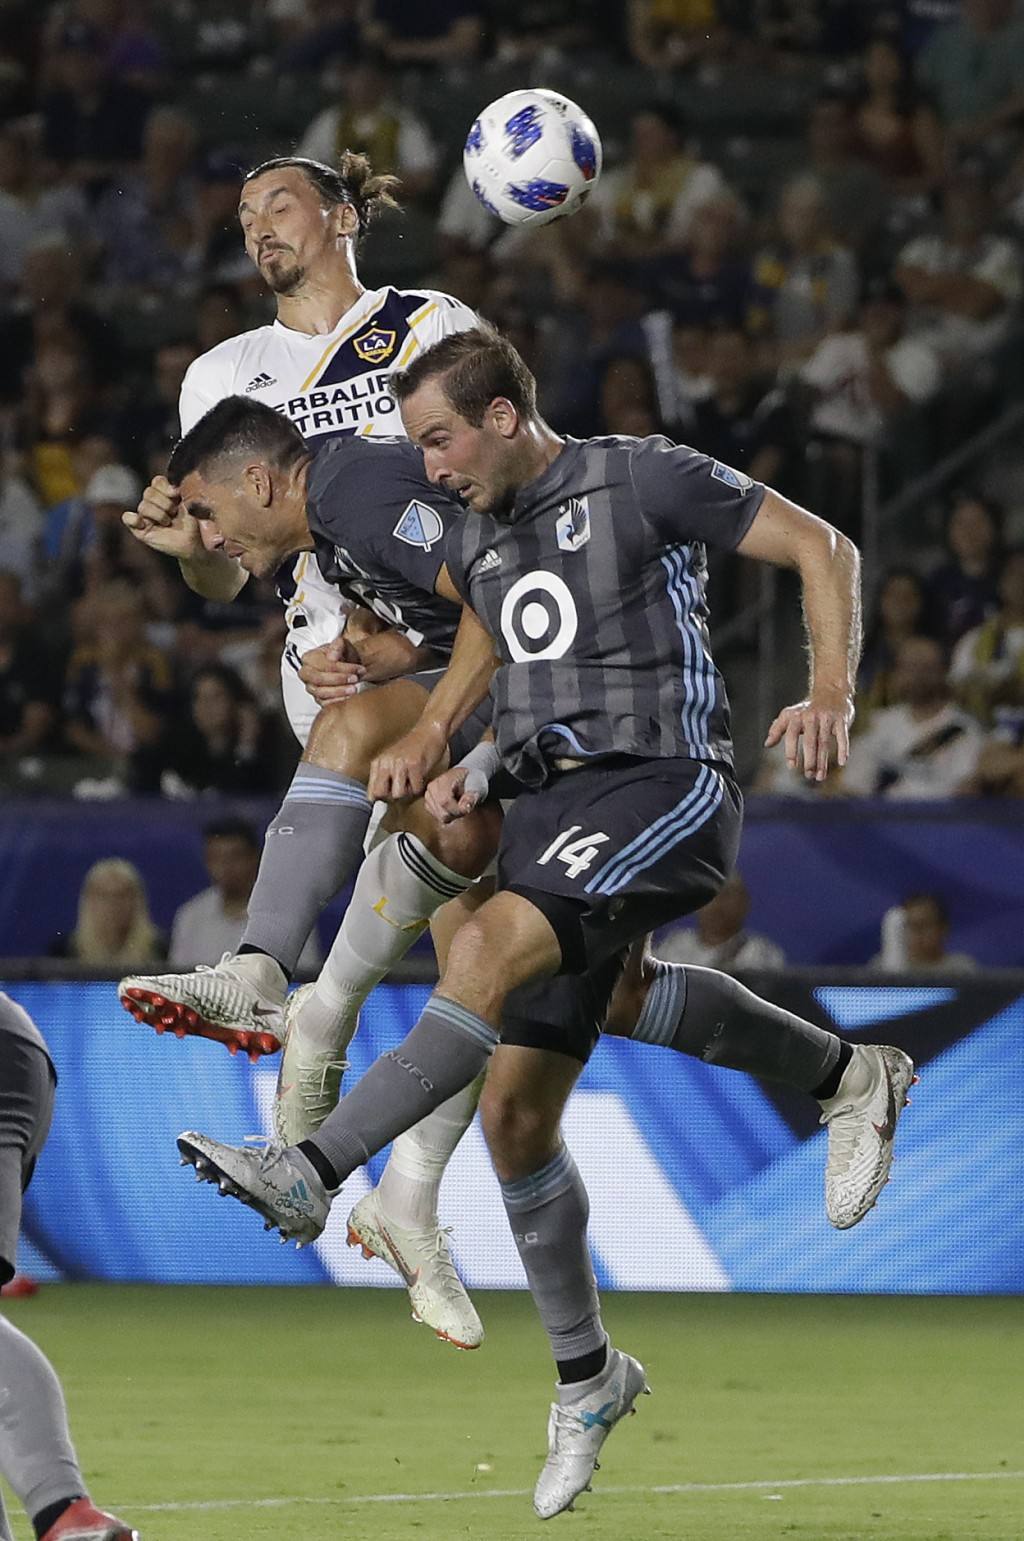 LA Galaxy forward Zlatan Ibrahimovic, top, is defended by Minnesota United's Michael Boxall, center, and Brent Kallman (14) during the second half of